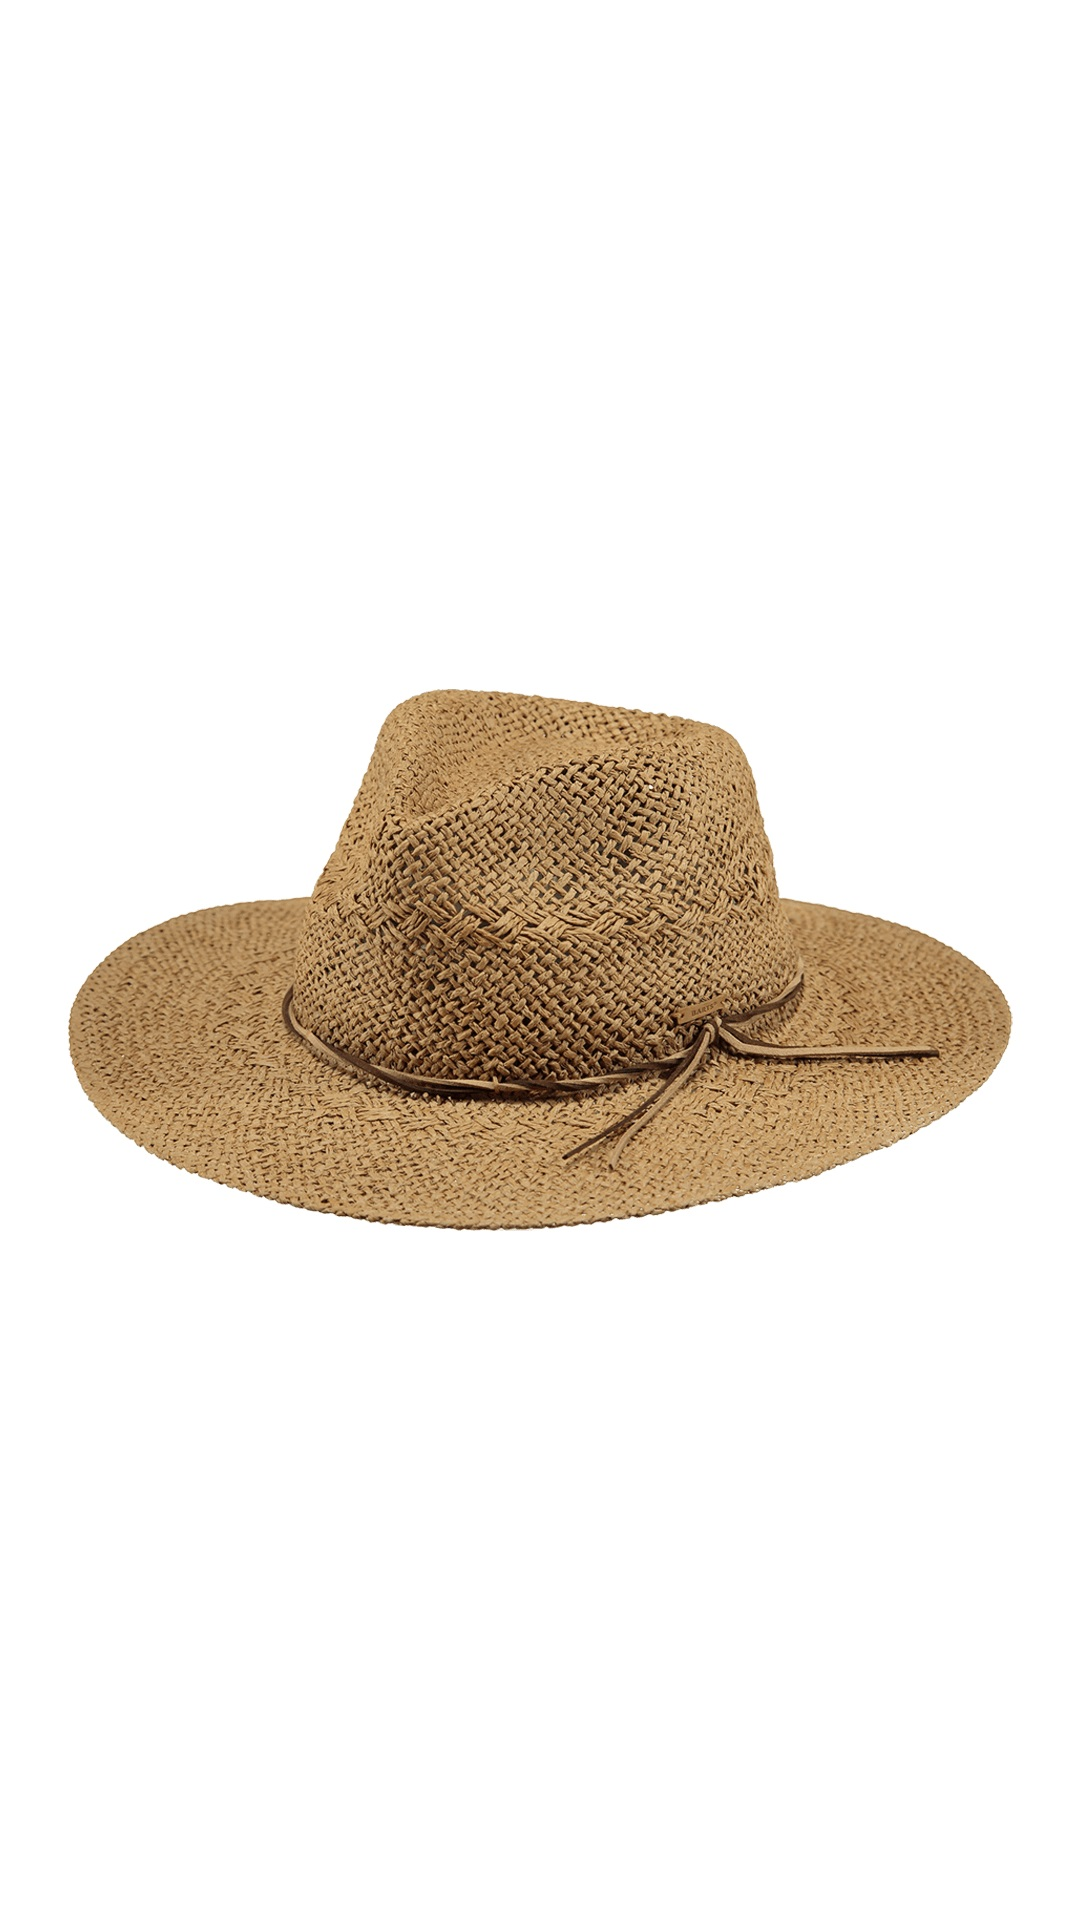 4723 ARDAY HAT BROWN